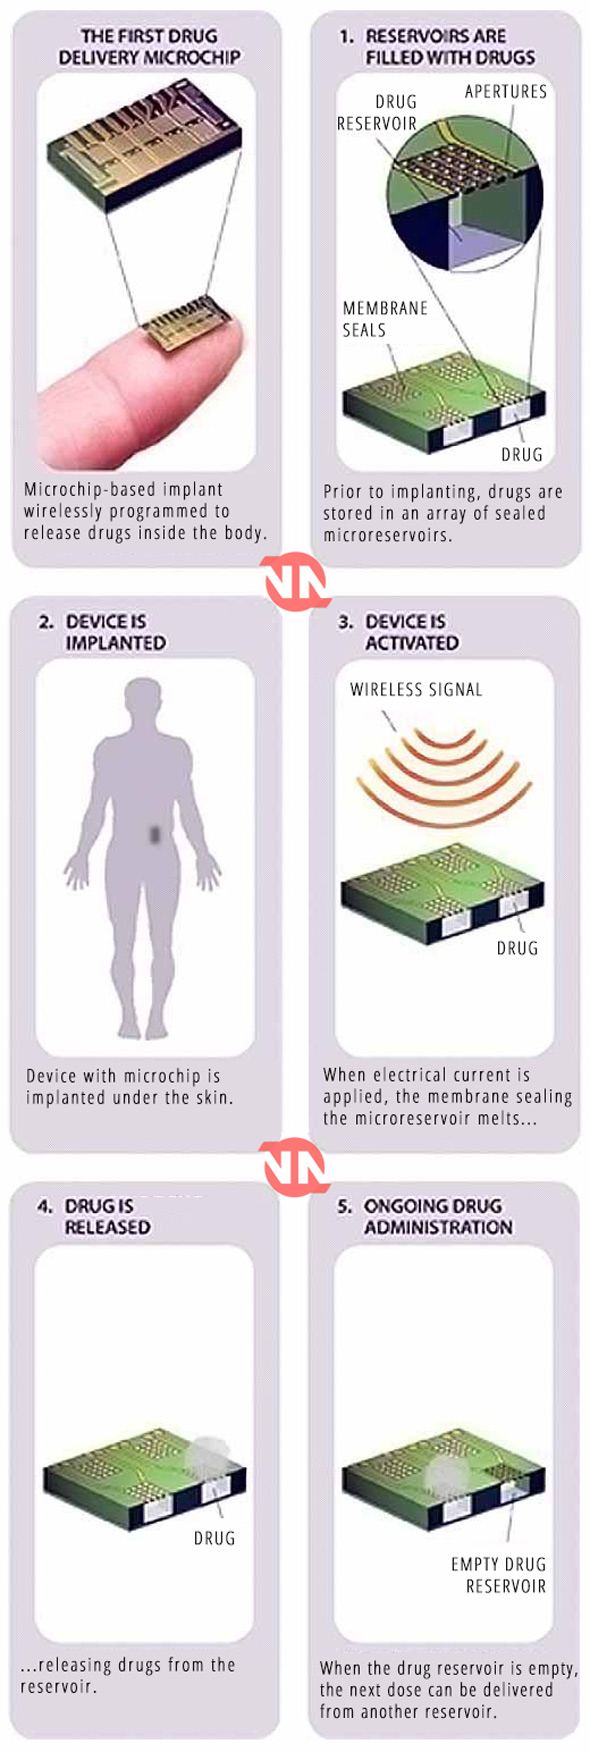 the new microchips will be remotely accessed and controlled by a third party